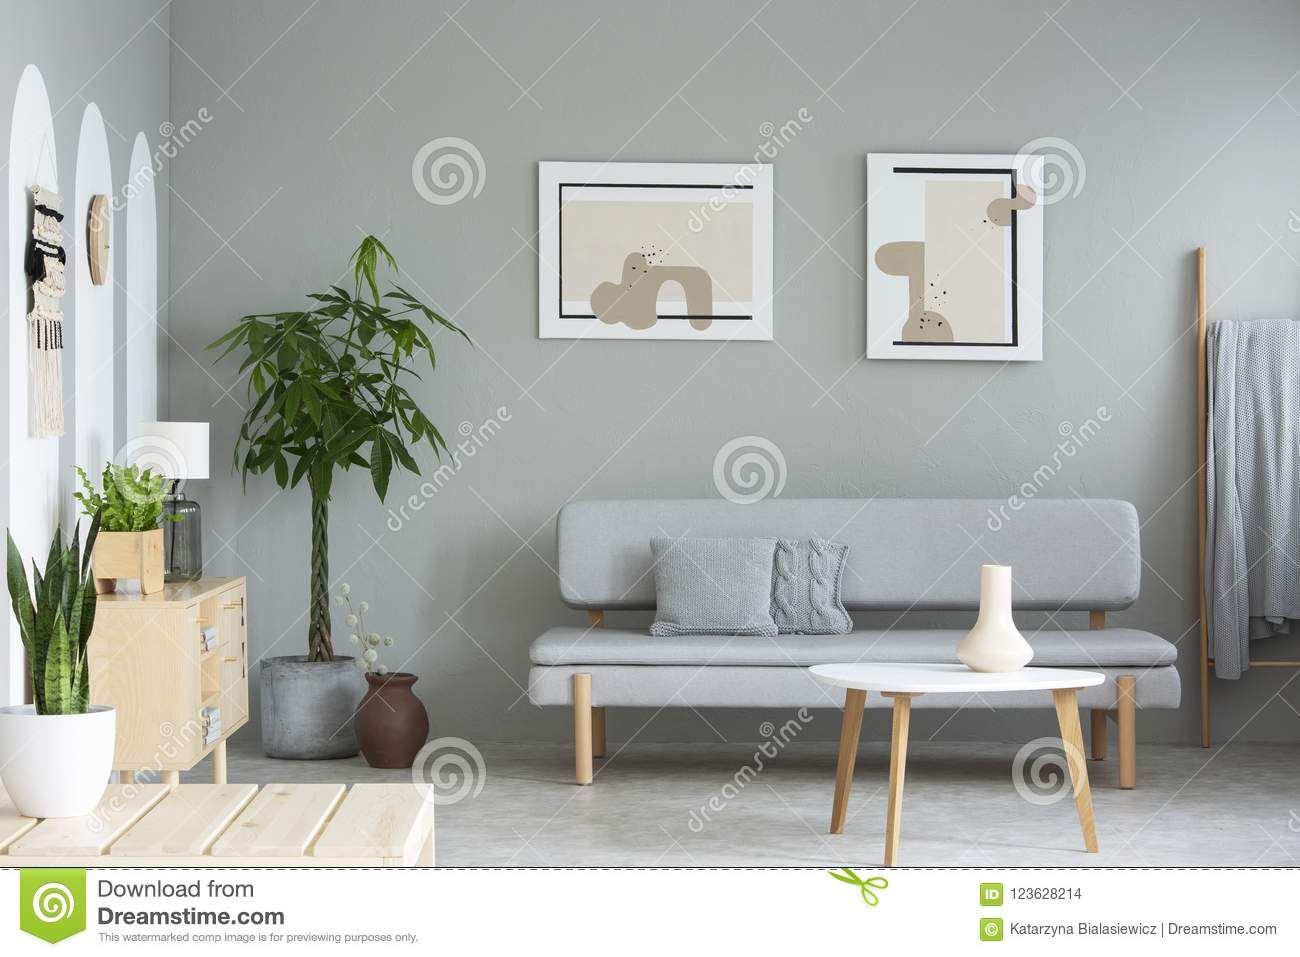 Table En Bois Devant Le Sofa Gris Dans L Interio Simple De Salon Photo Stock Image Du Dans Table 123628214